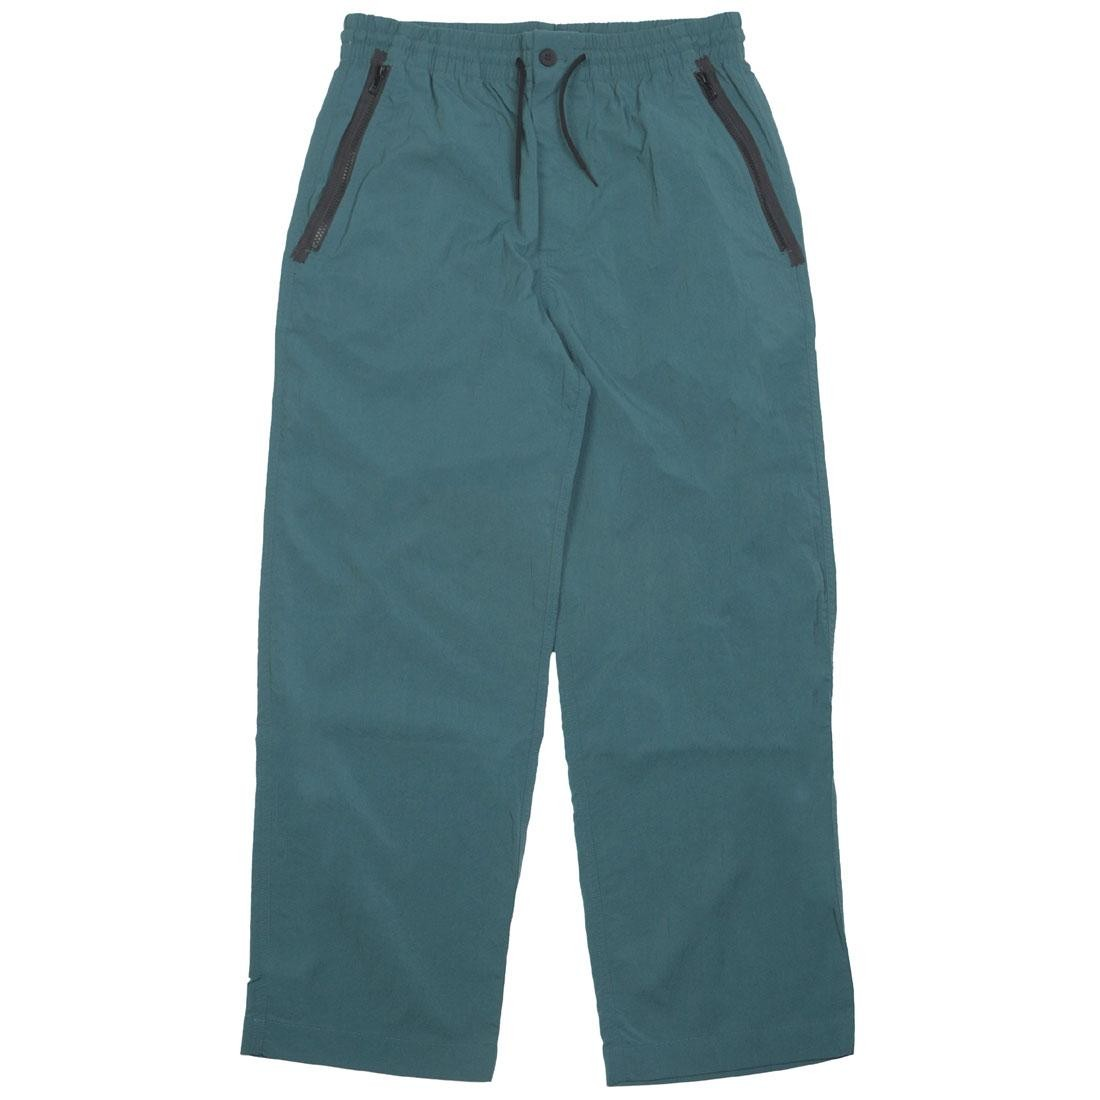 Adidas Y-3 Men Nylon Twill Slim Pants (green / petrol green)